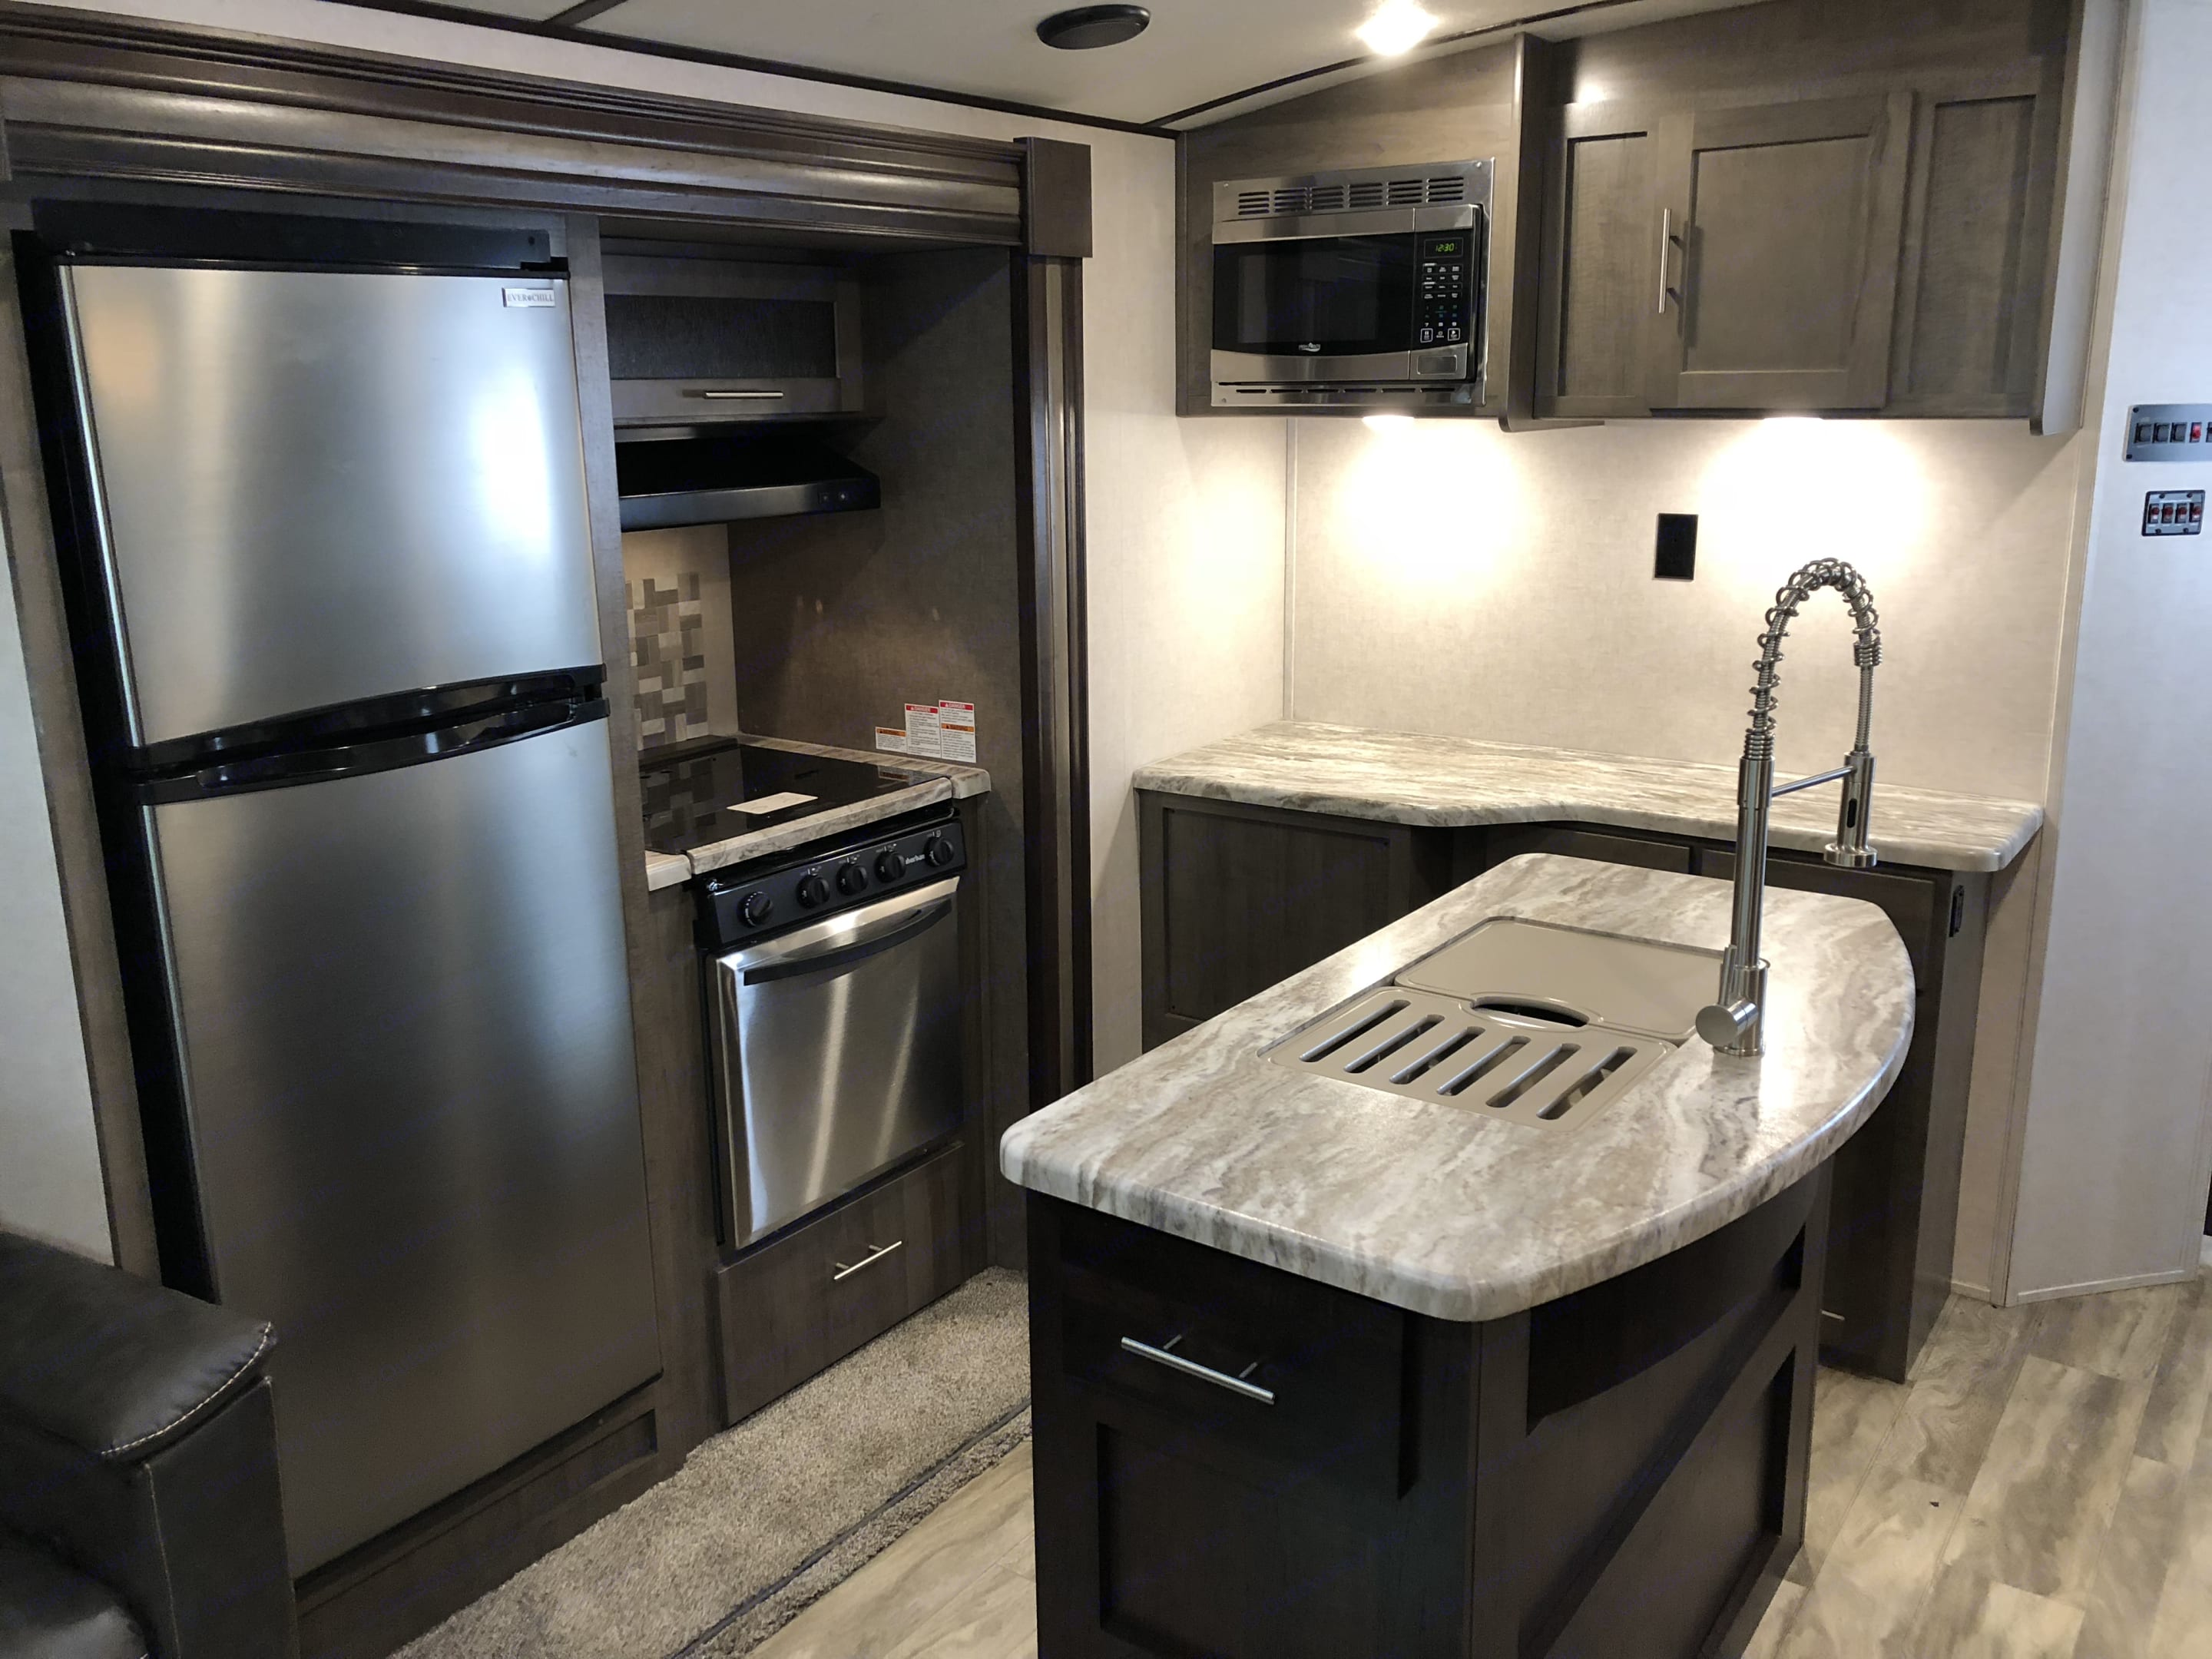 Spacious kitchen with island and lists of storage. Full size refrigerator and a 3 burner stove top oven. . Forest River Surveyor 2019